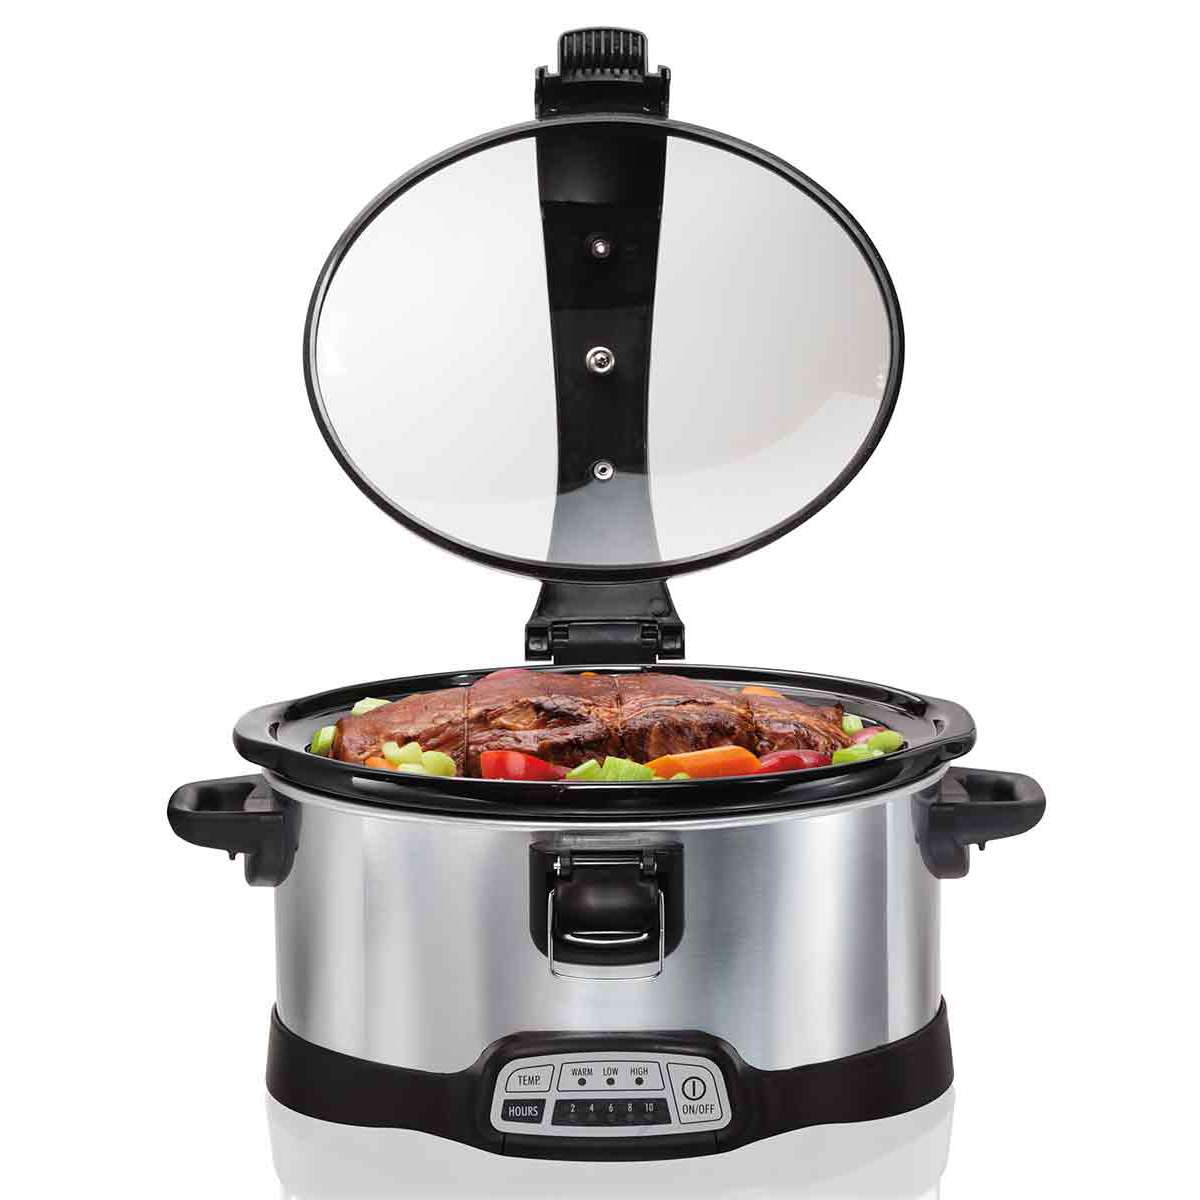 Programmable Stay or Go® 6 Quart Slow Cooker (33467)